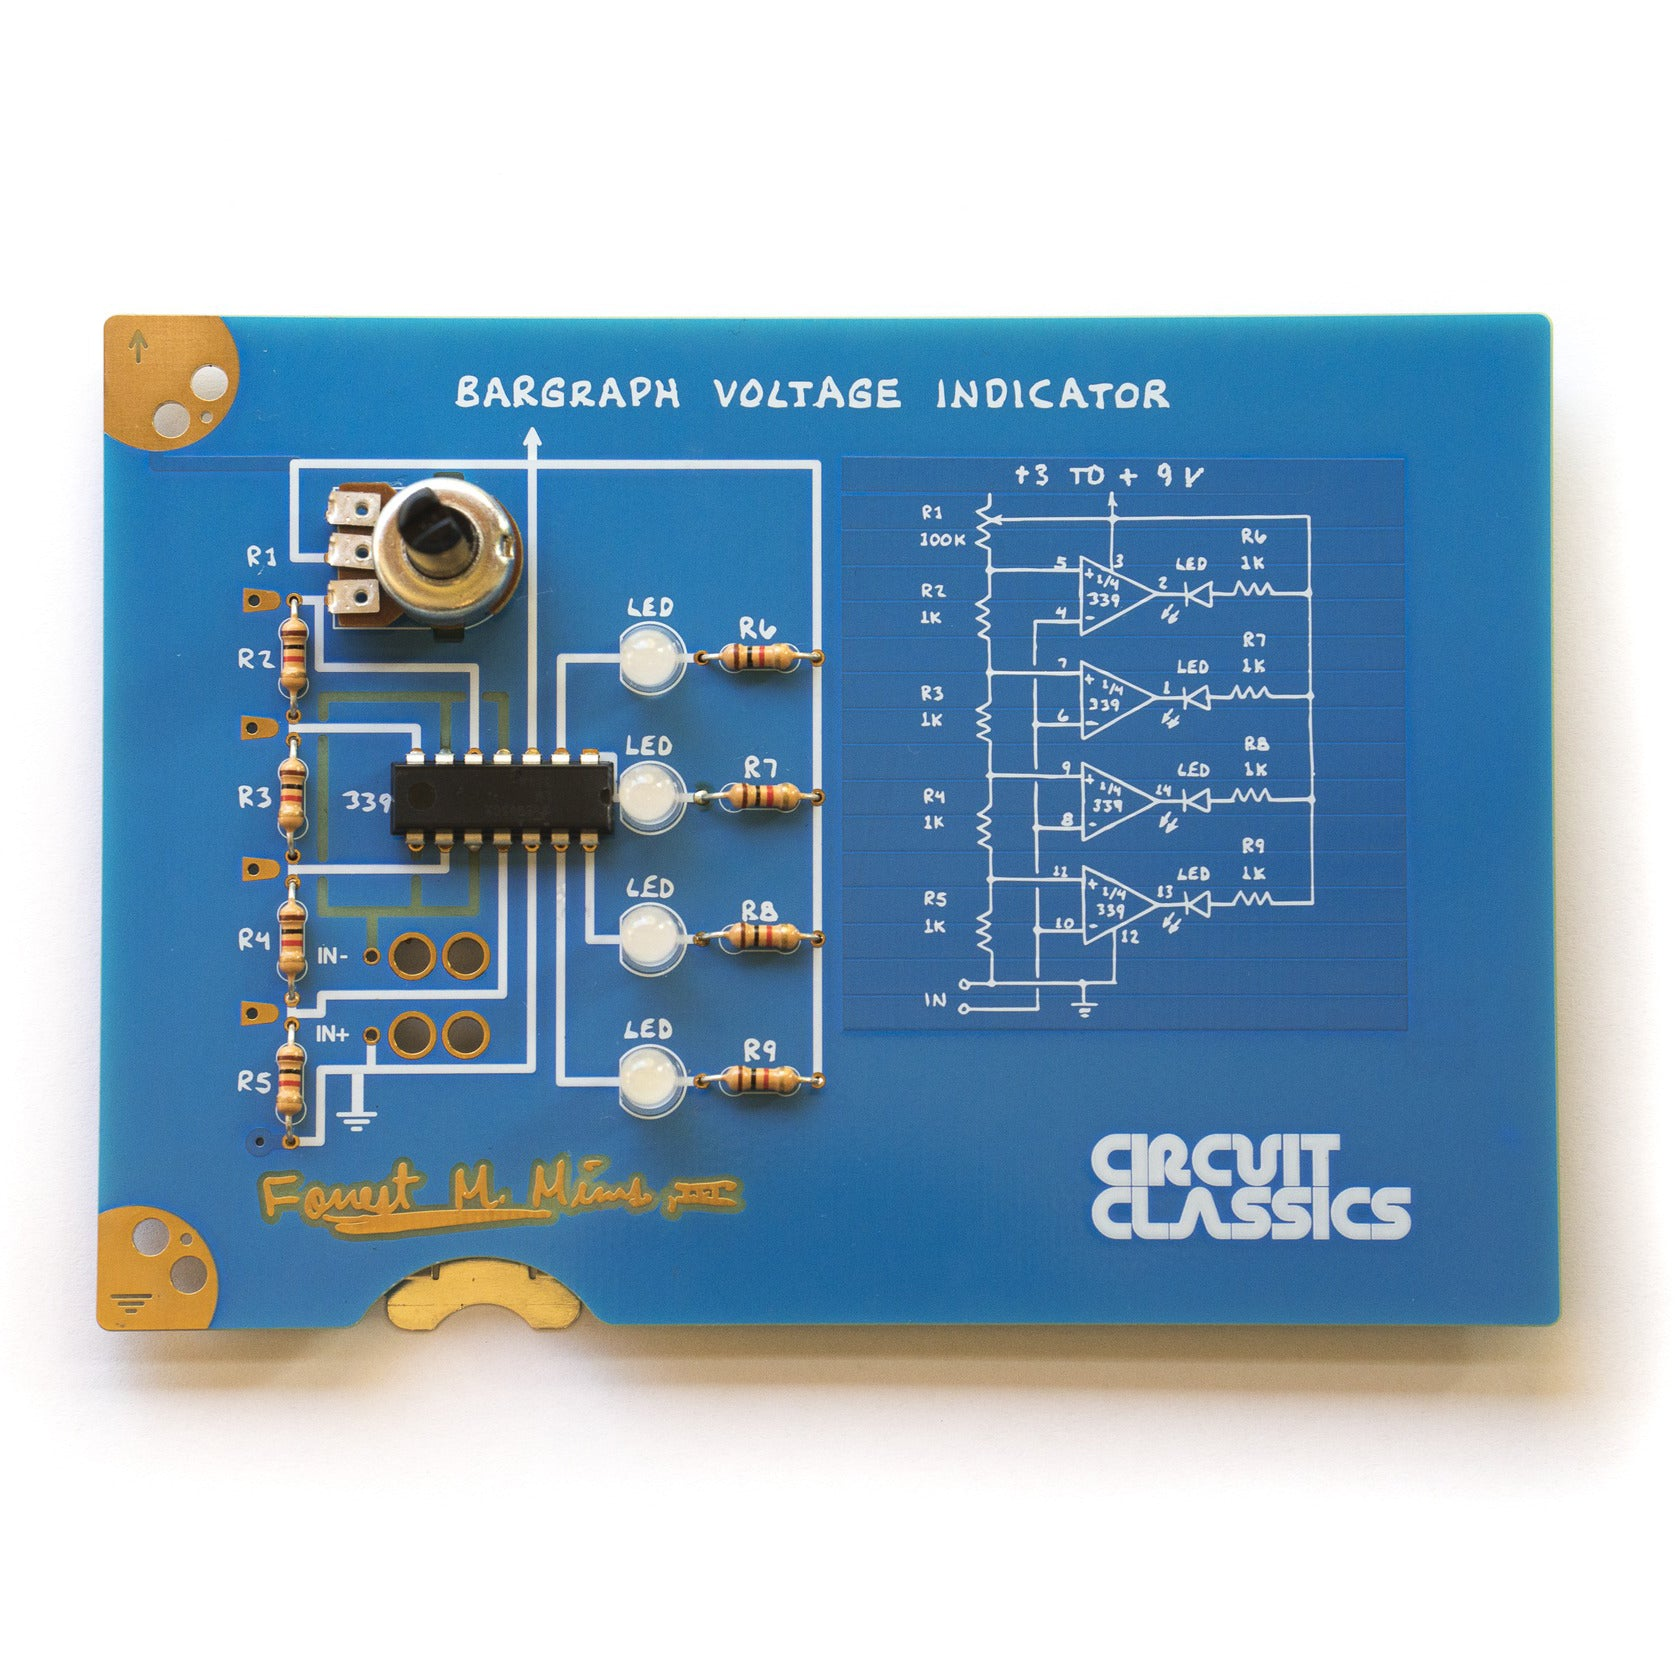 In The Kit With Thermistor And Voltage Divider Circuit Programming Arduino Bargraph Indicatorv1531300587